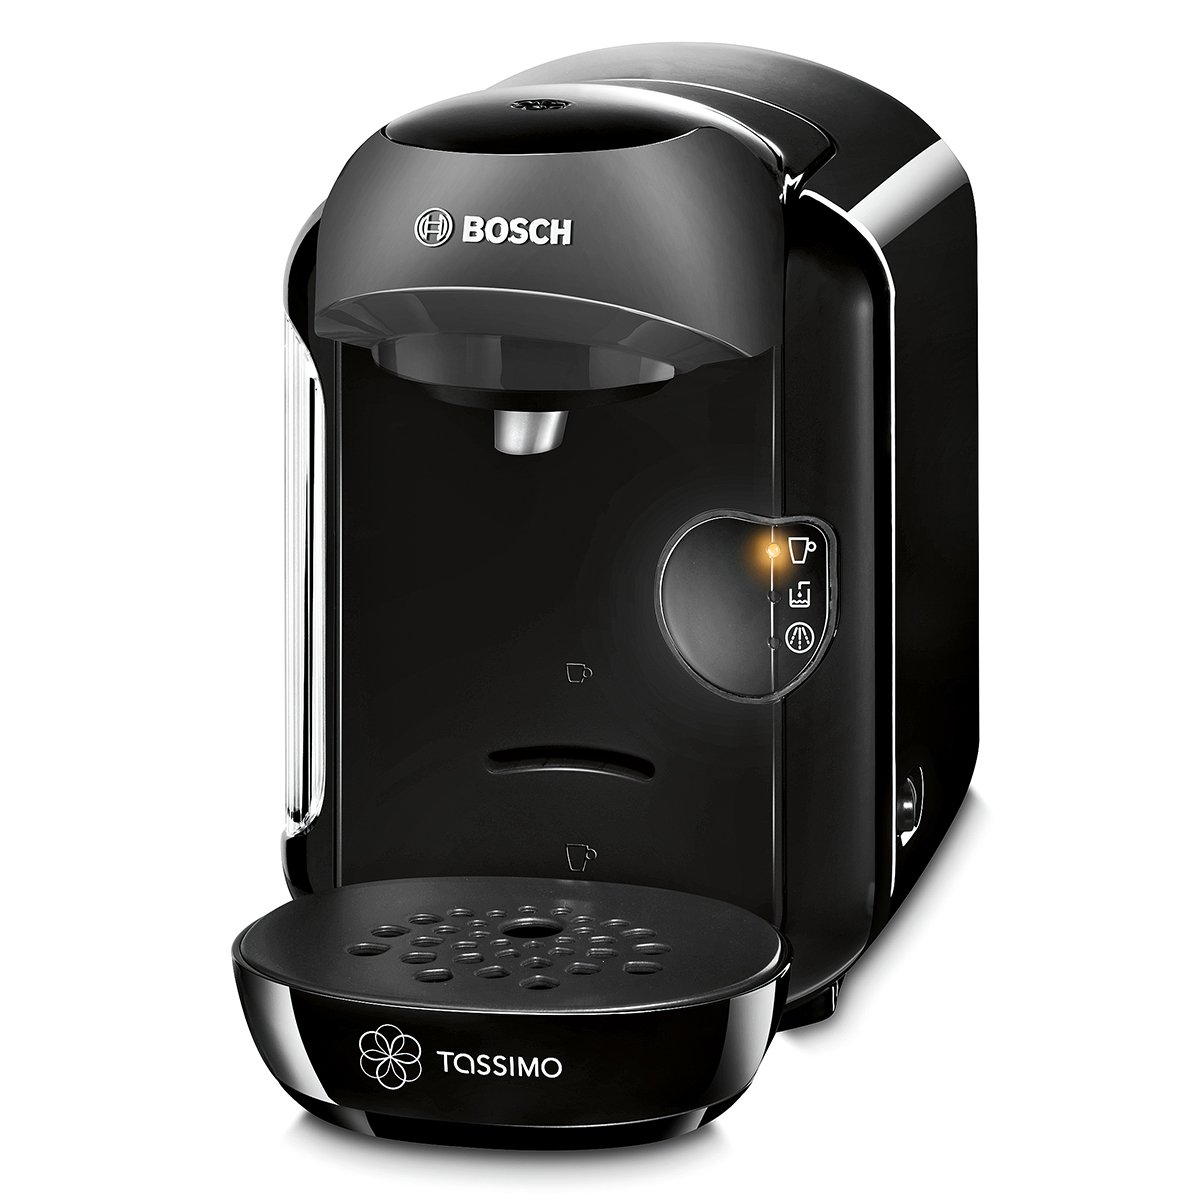 kaffeemaschine bosch tassimo kaffe kakao multi getr nke automat vollautomatisch ebay. Black Bedroom Furniture Sets. Home Design Ideas